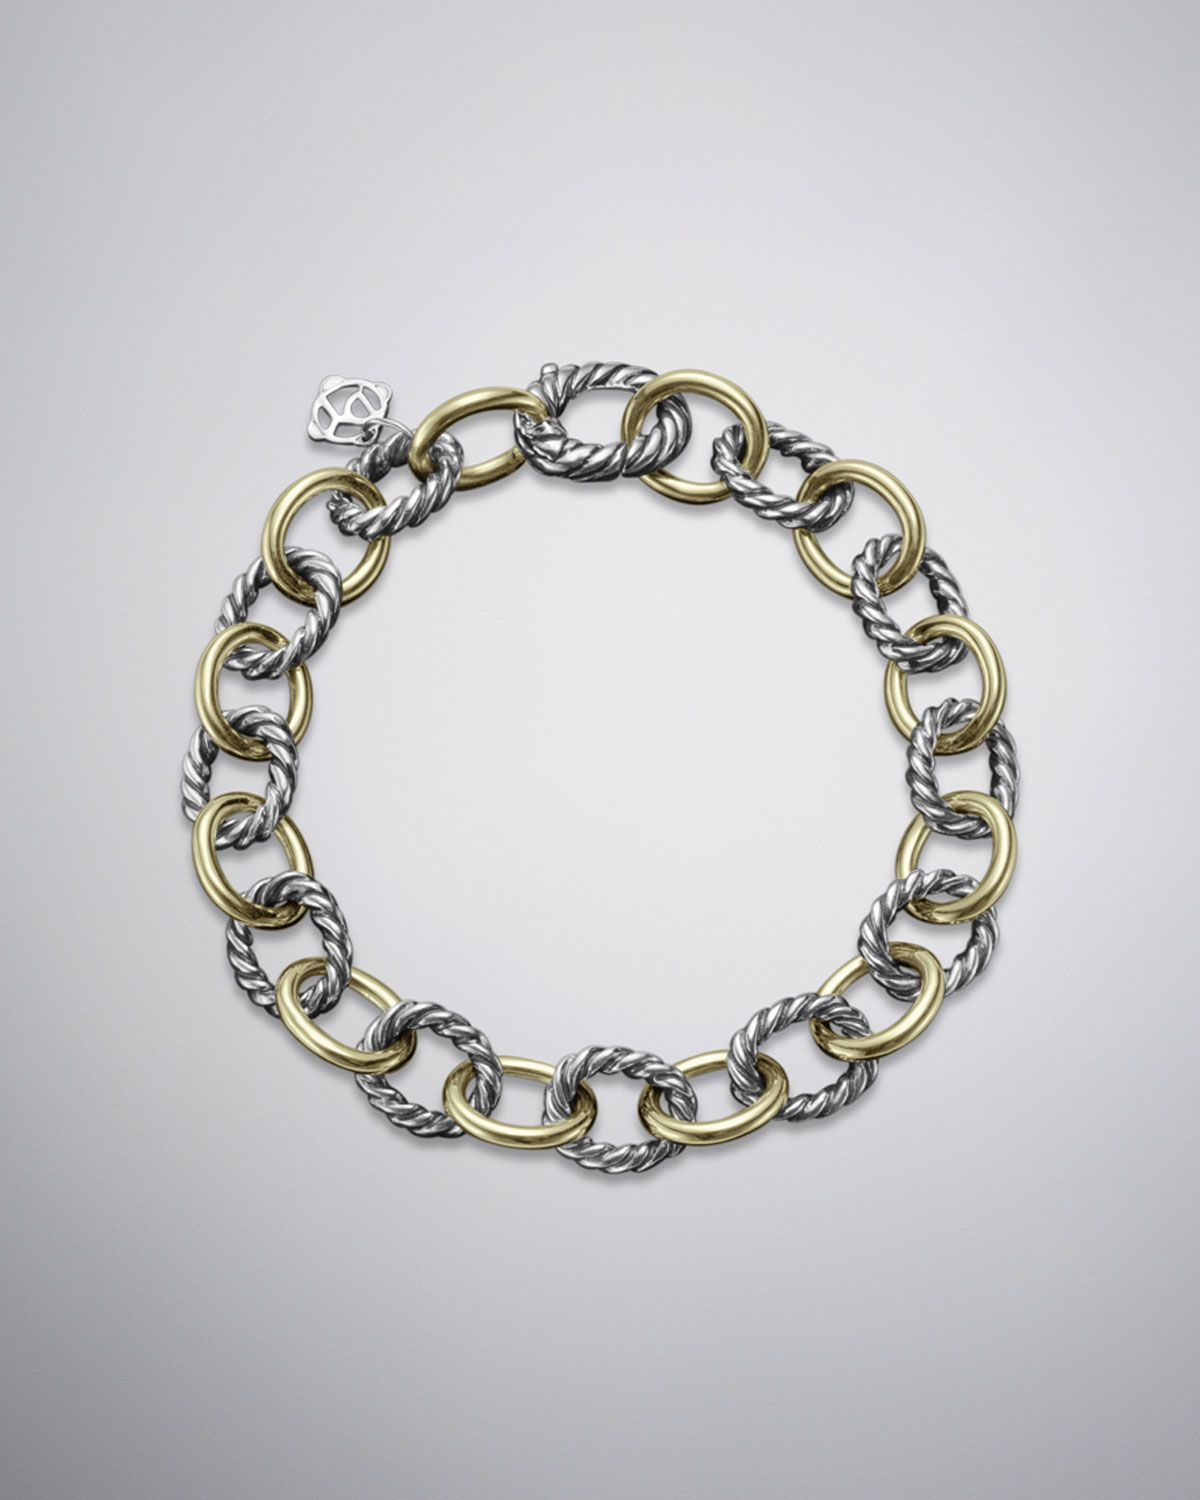 Medium Oval Link Bracelet By David Yurman At Neiman Marcus